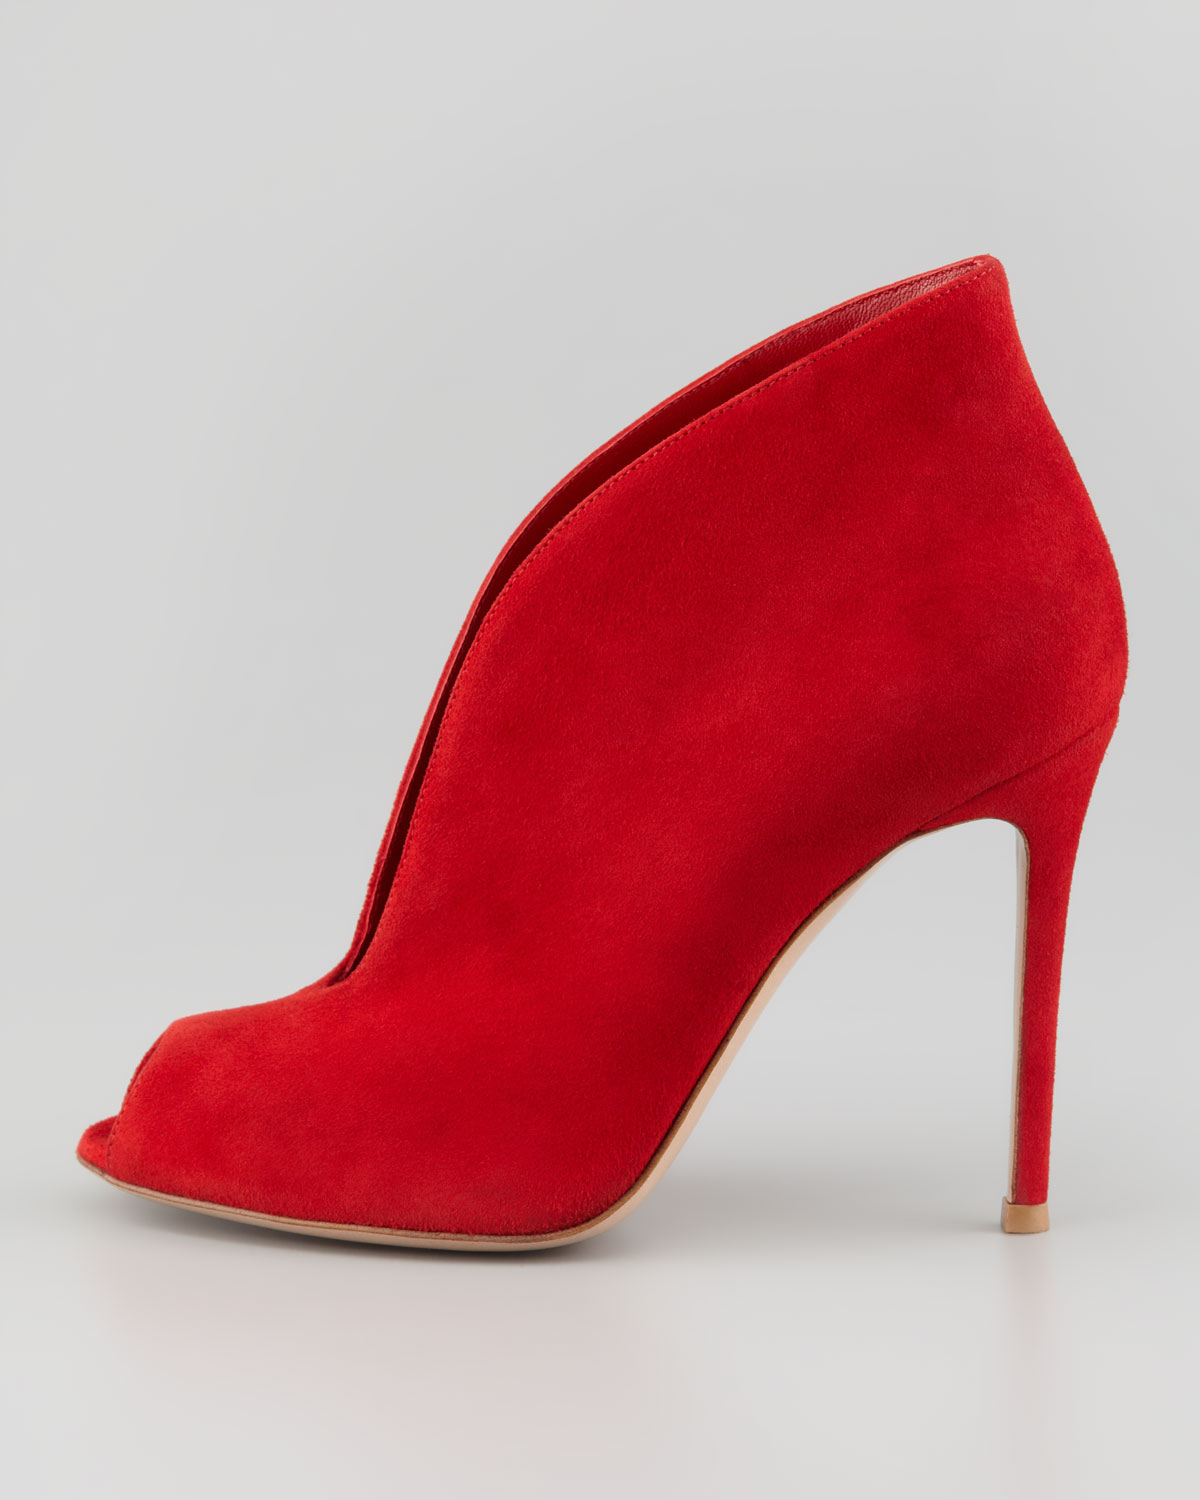 61d182923d7 Gianvito Rossi Womens Suede Ankleflare Bootie Red